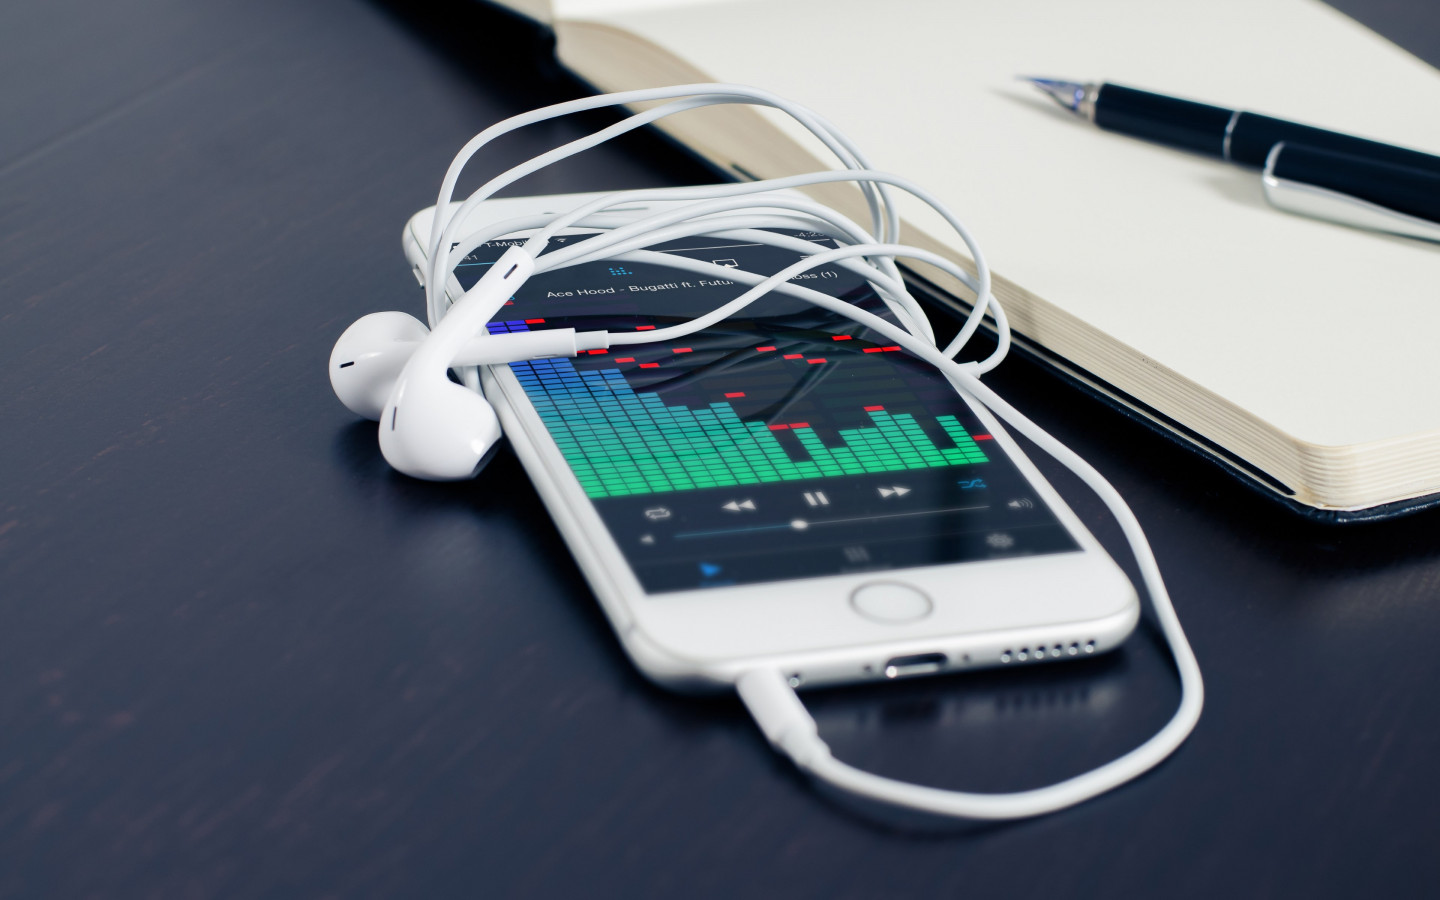 Music plays on the iPhone's earphones wallpaper 1440x900